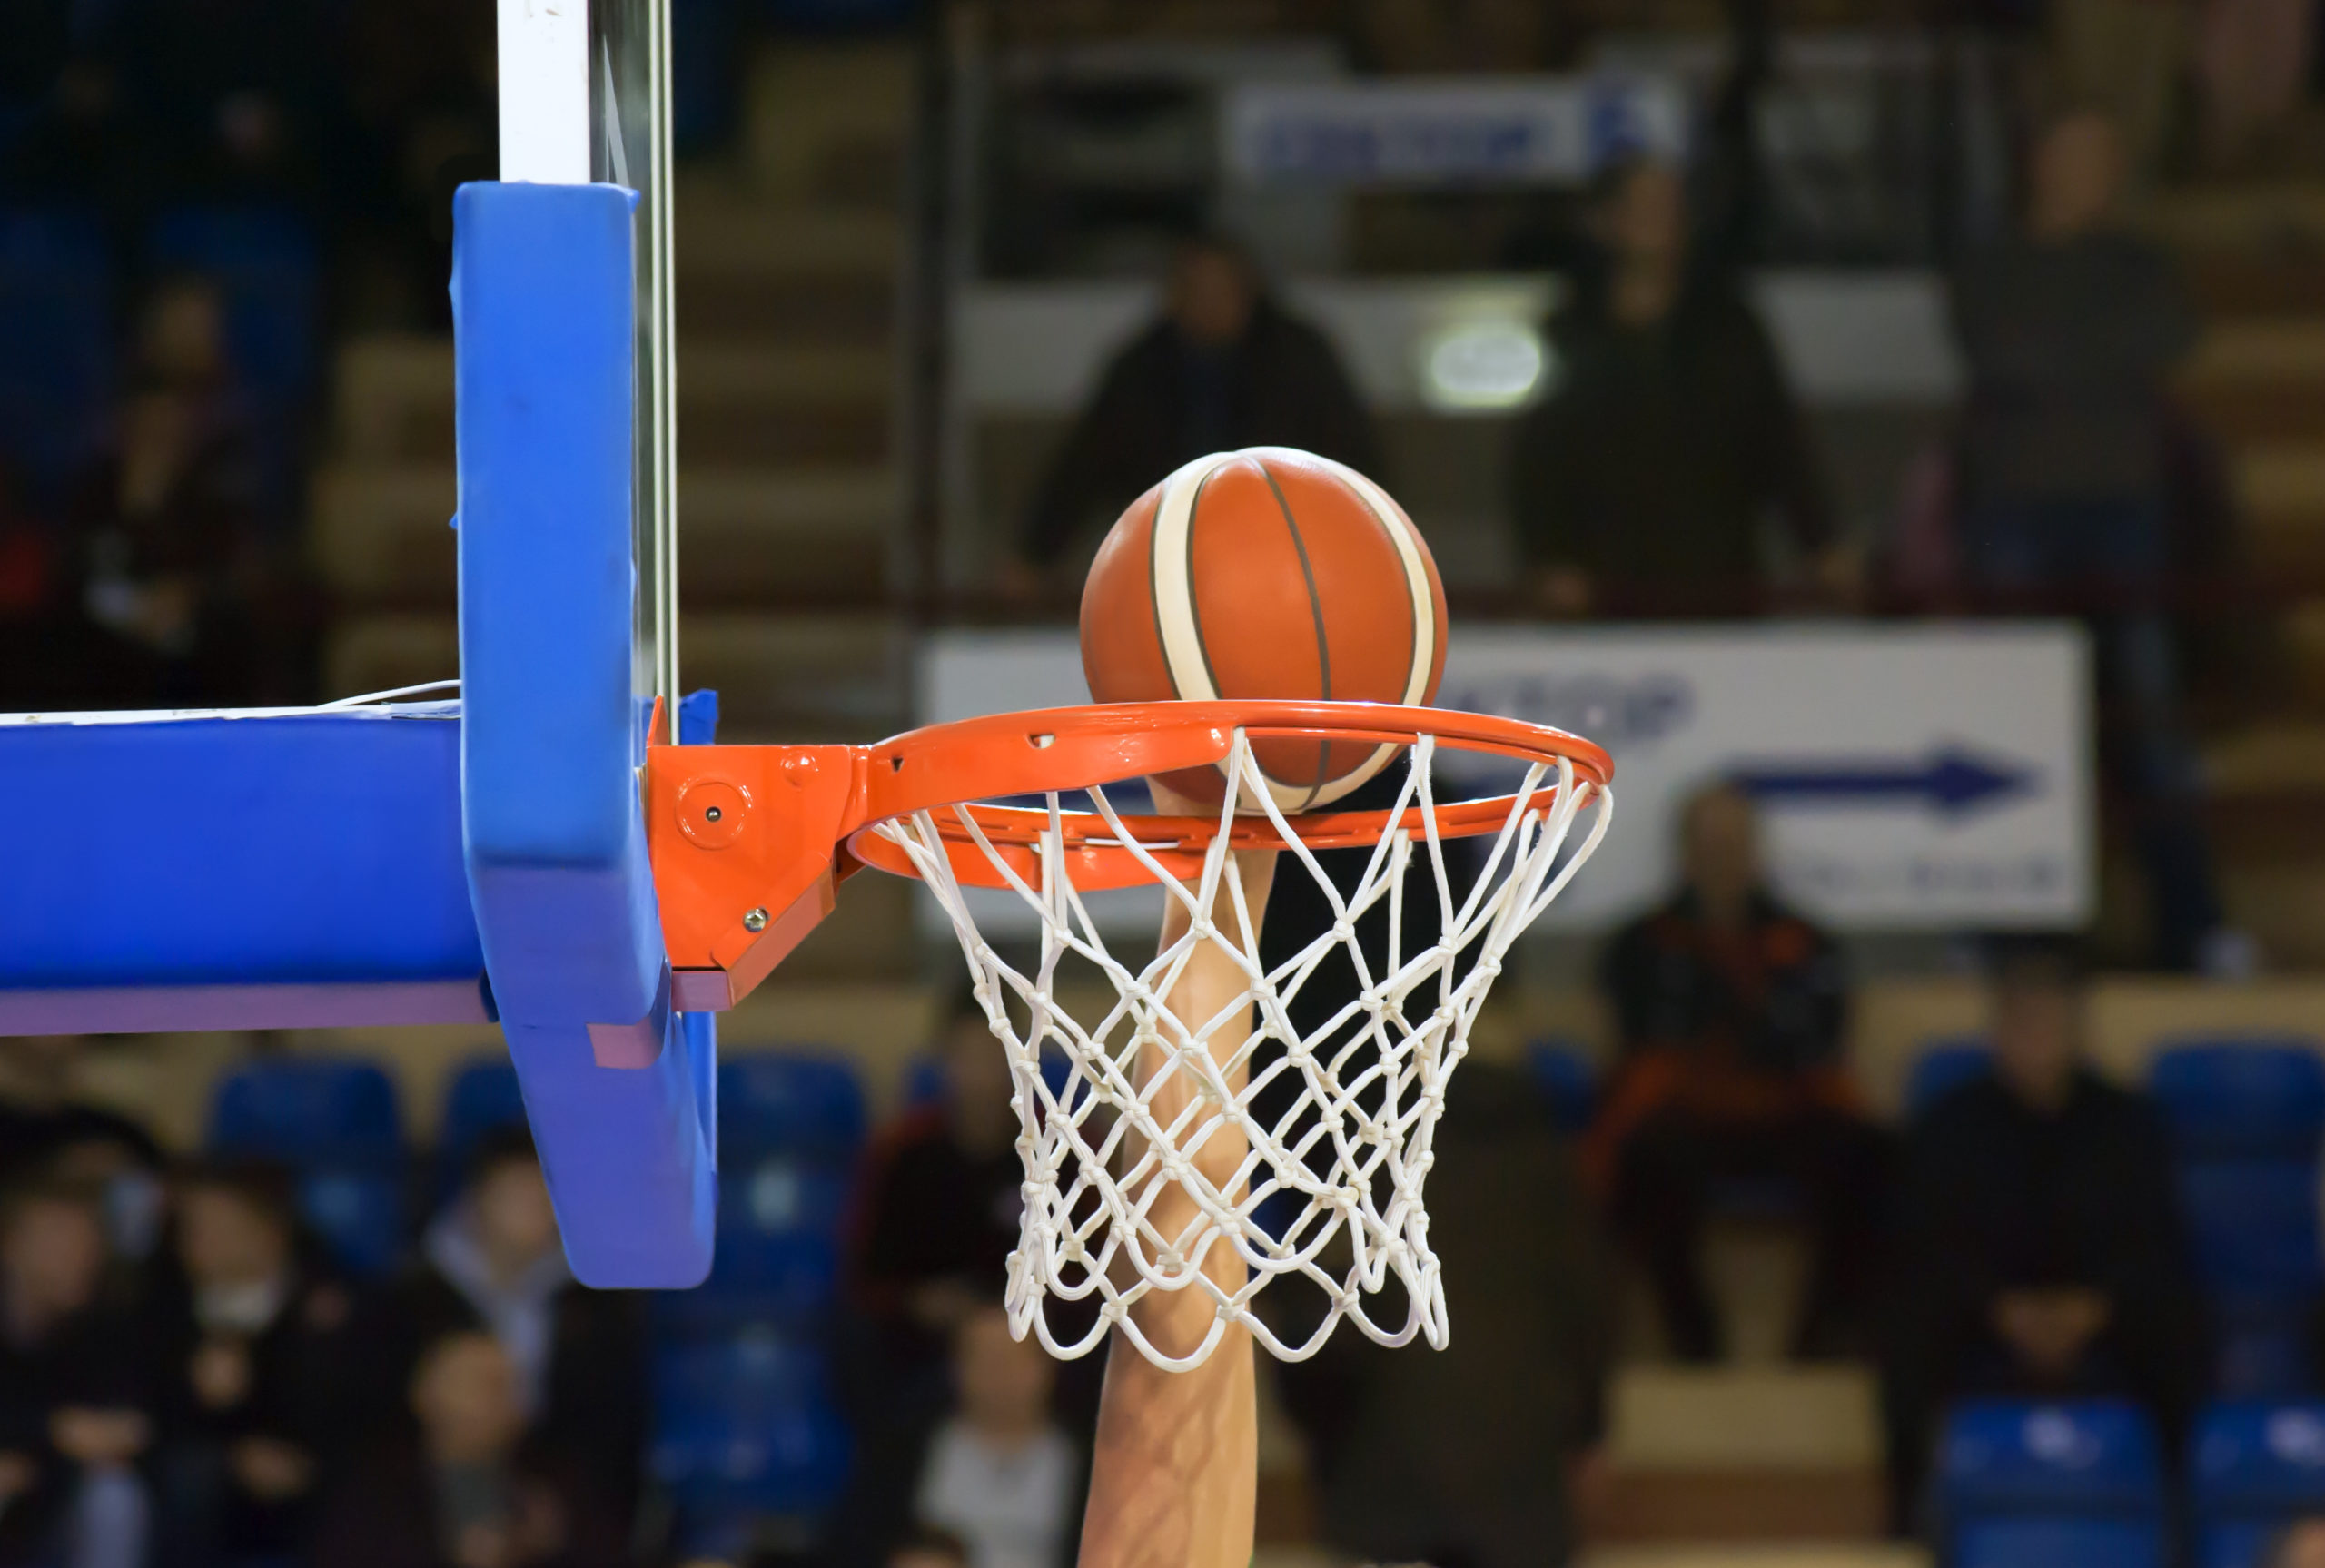 Closeup shot of a basketball player's arm pushing the basketball over the hoop edge into the net.